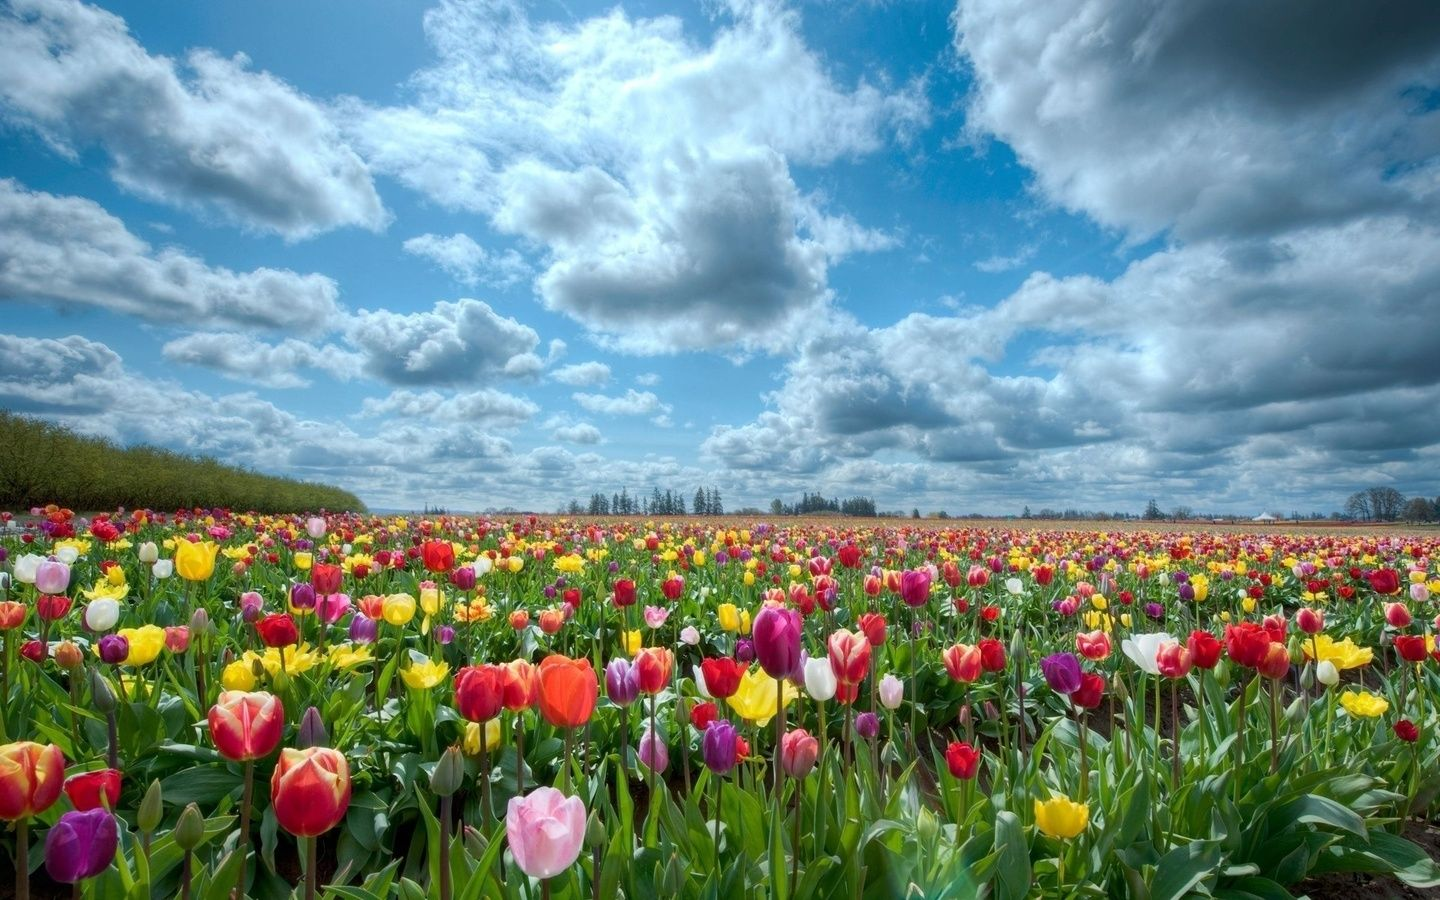 Of tulips cecila san tags flower field photoshop vintage tulips - Free Hd Flowers Wallpaper Of Of Tulips